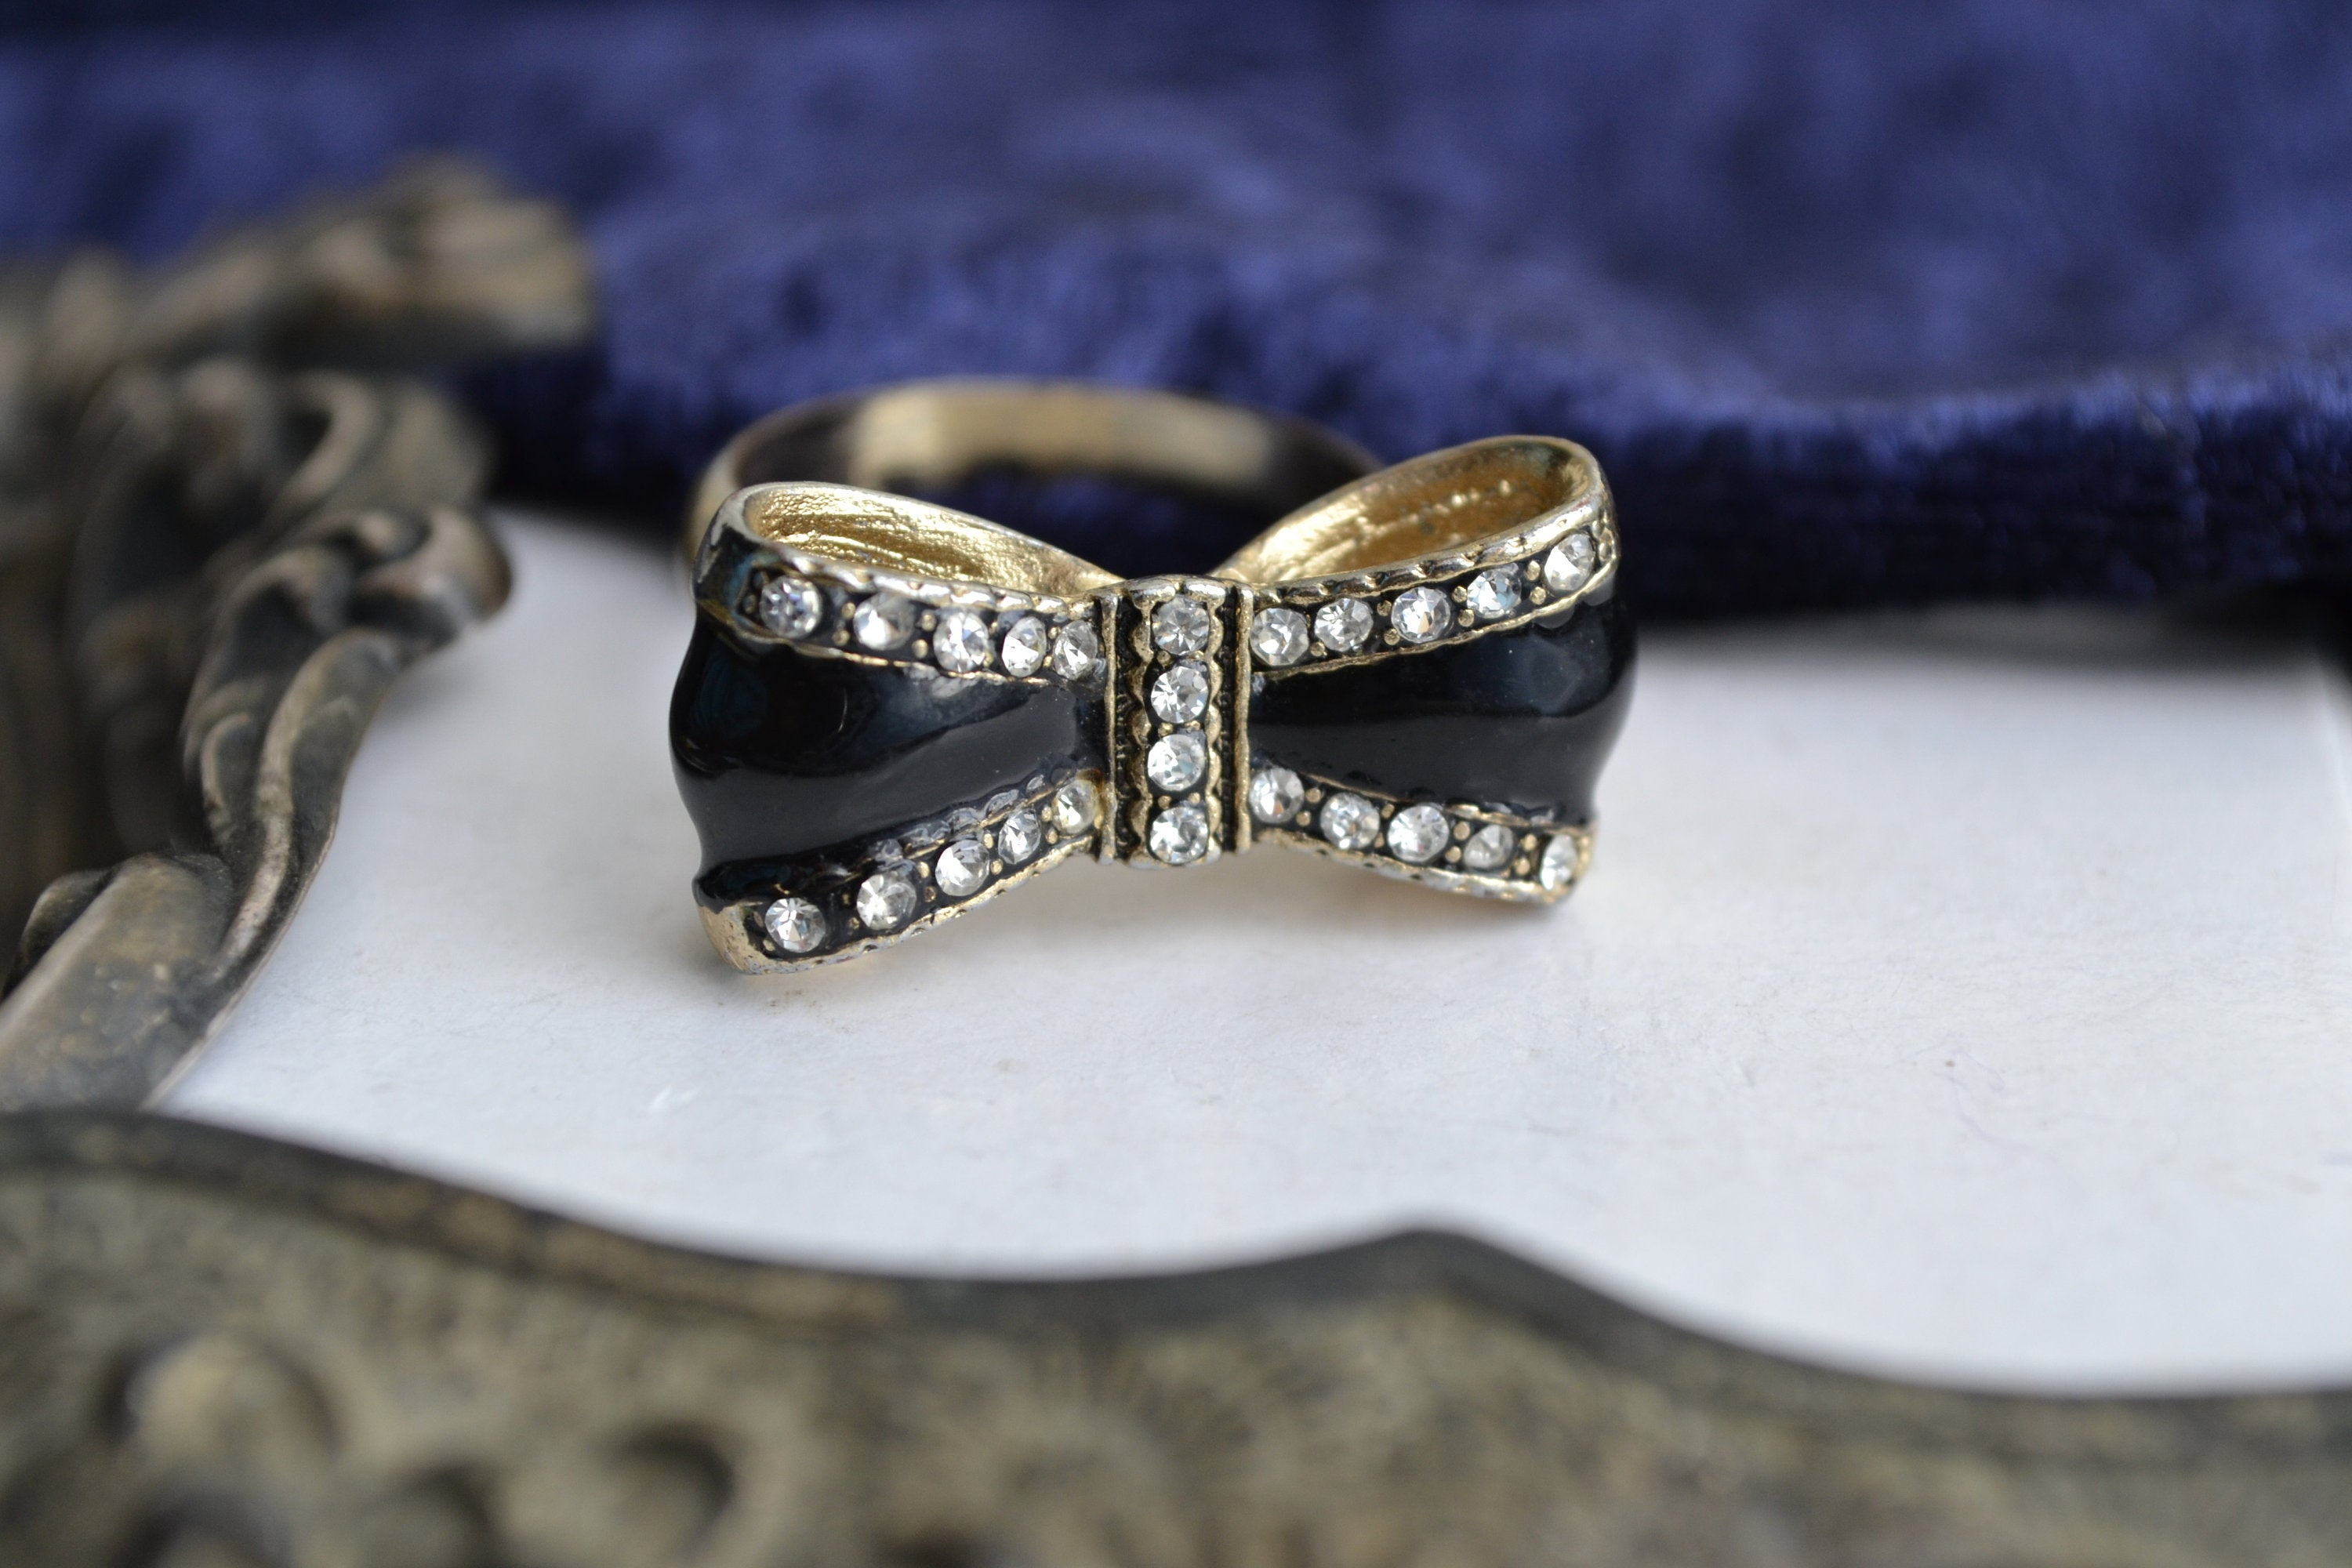 Vintage Black Enamel Bow Ring With Colourless Rhinestones, Ladies Ring, Uk Size R, 1990s Diamante Pretty Ring With Regard To Recent Classic Bow Rings (View 18 of 25)